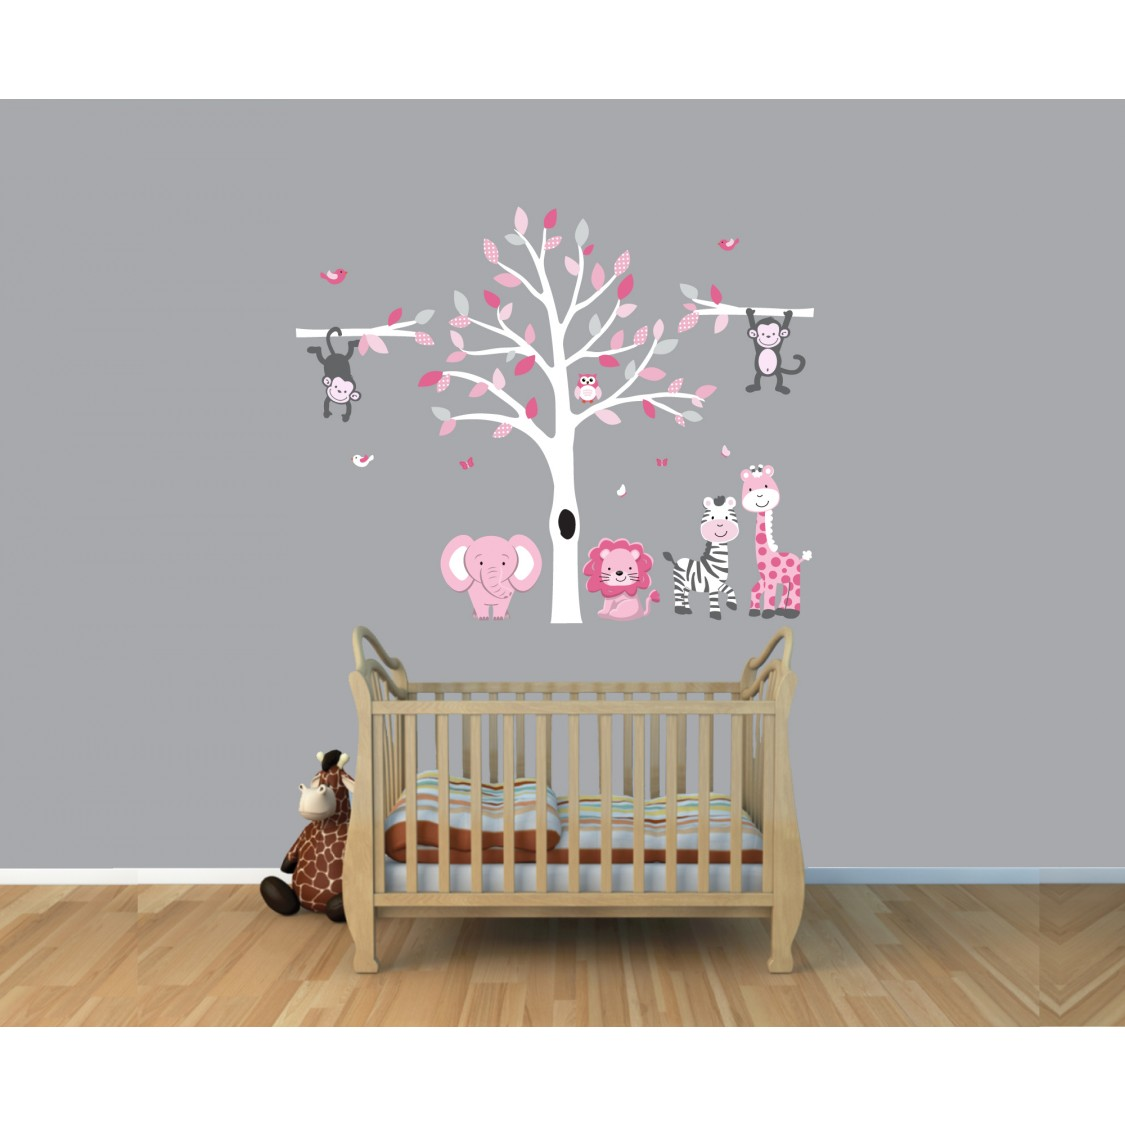 Pink & Gray Jungle Wall Decorations With Animal Stickers For Children